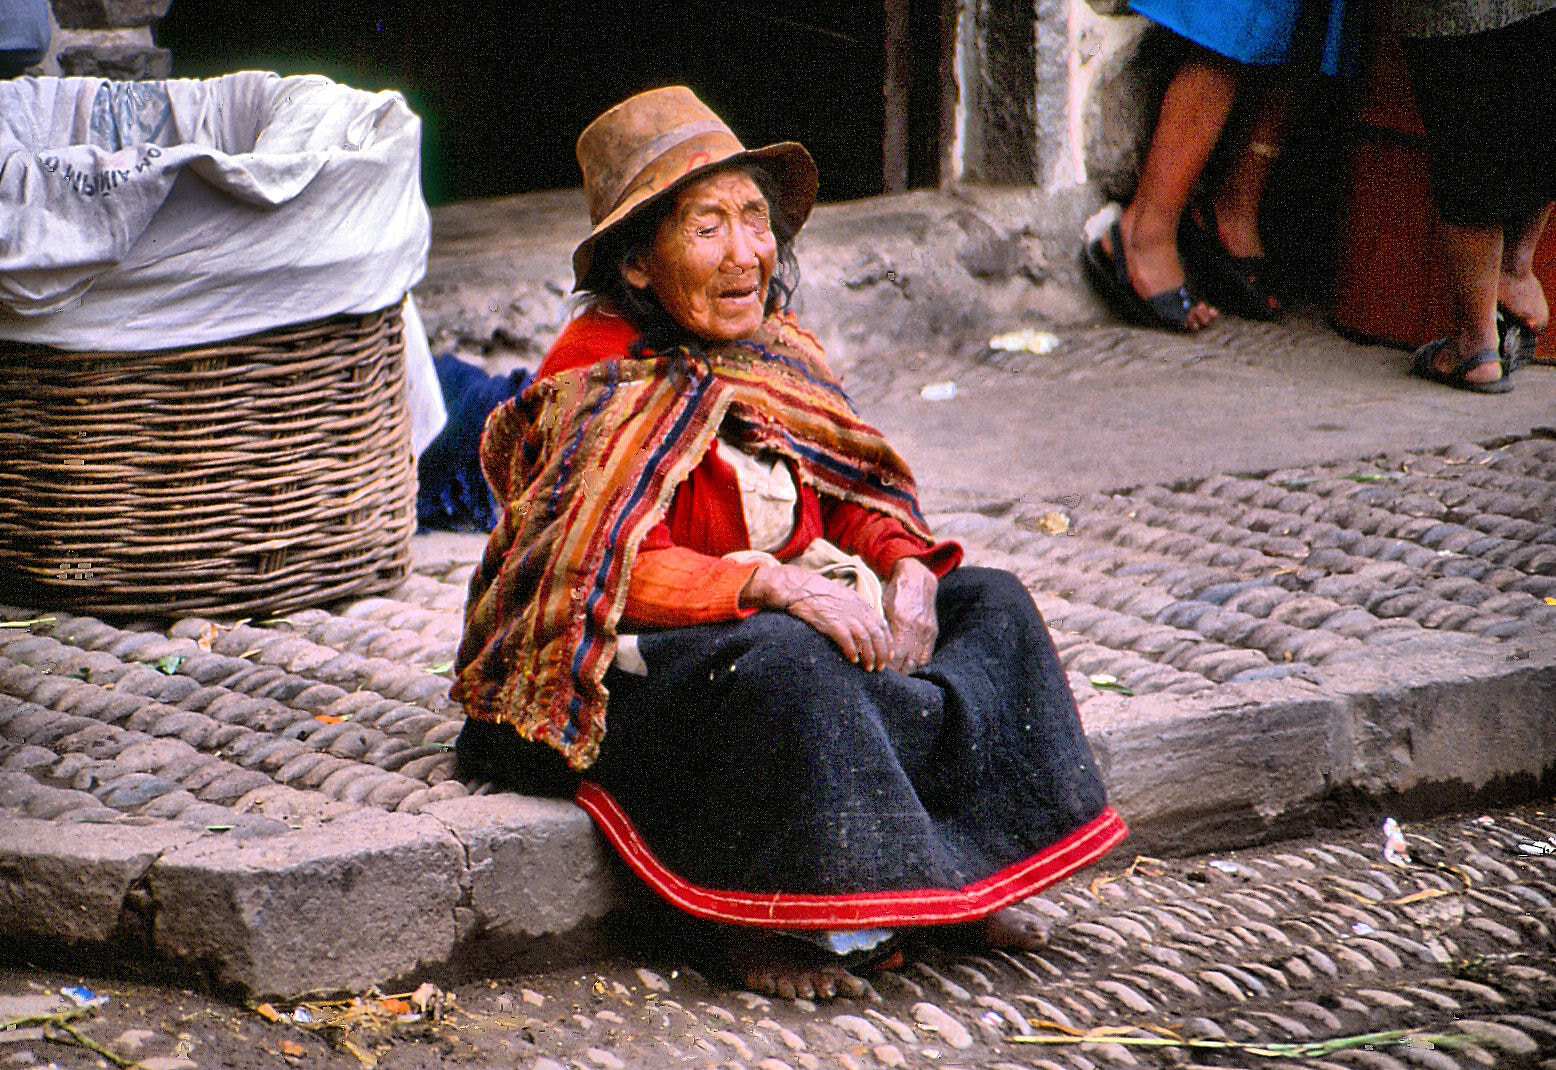 Photograph Old woman in Peru by Estetic of Senses on 500px